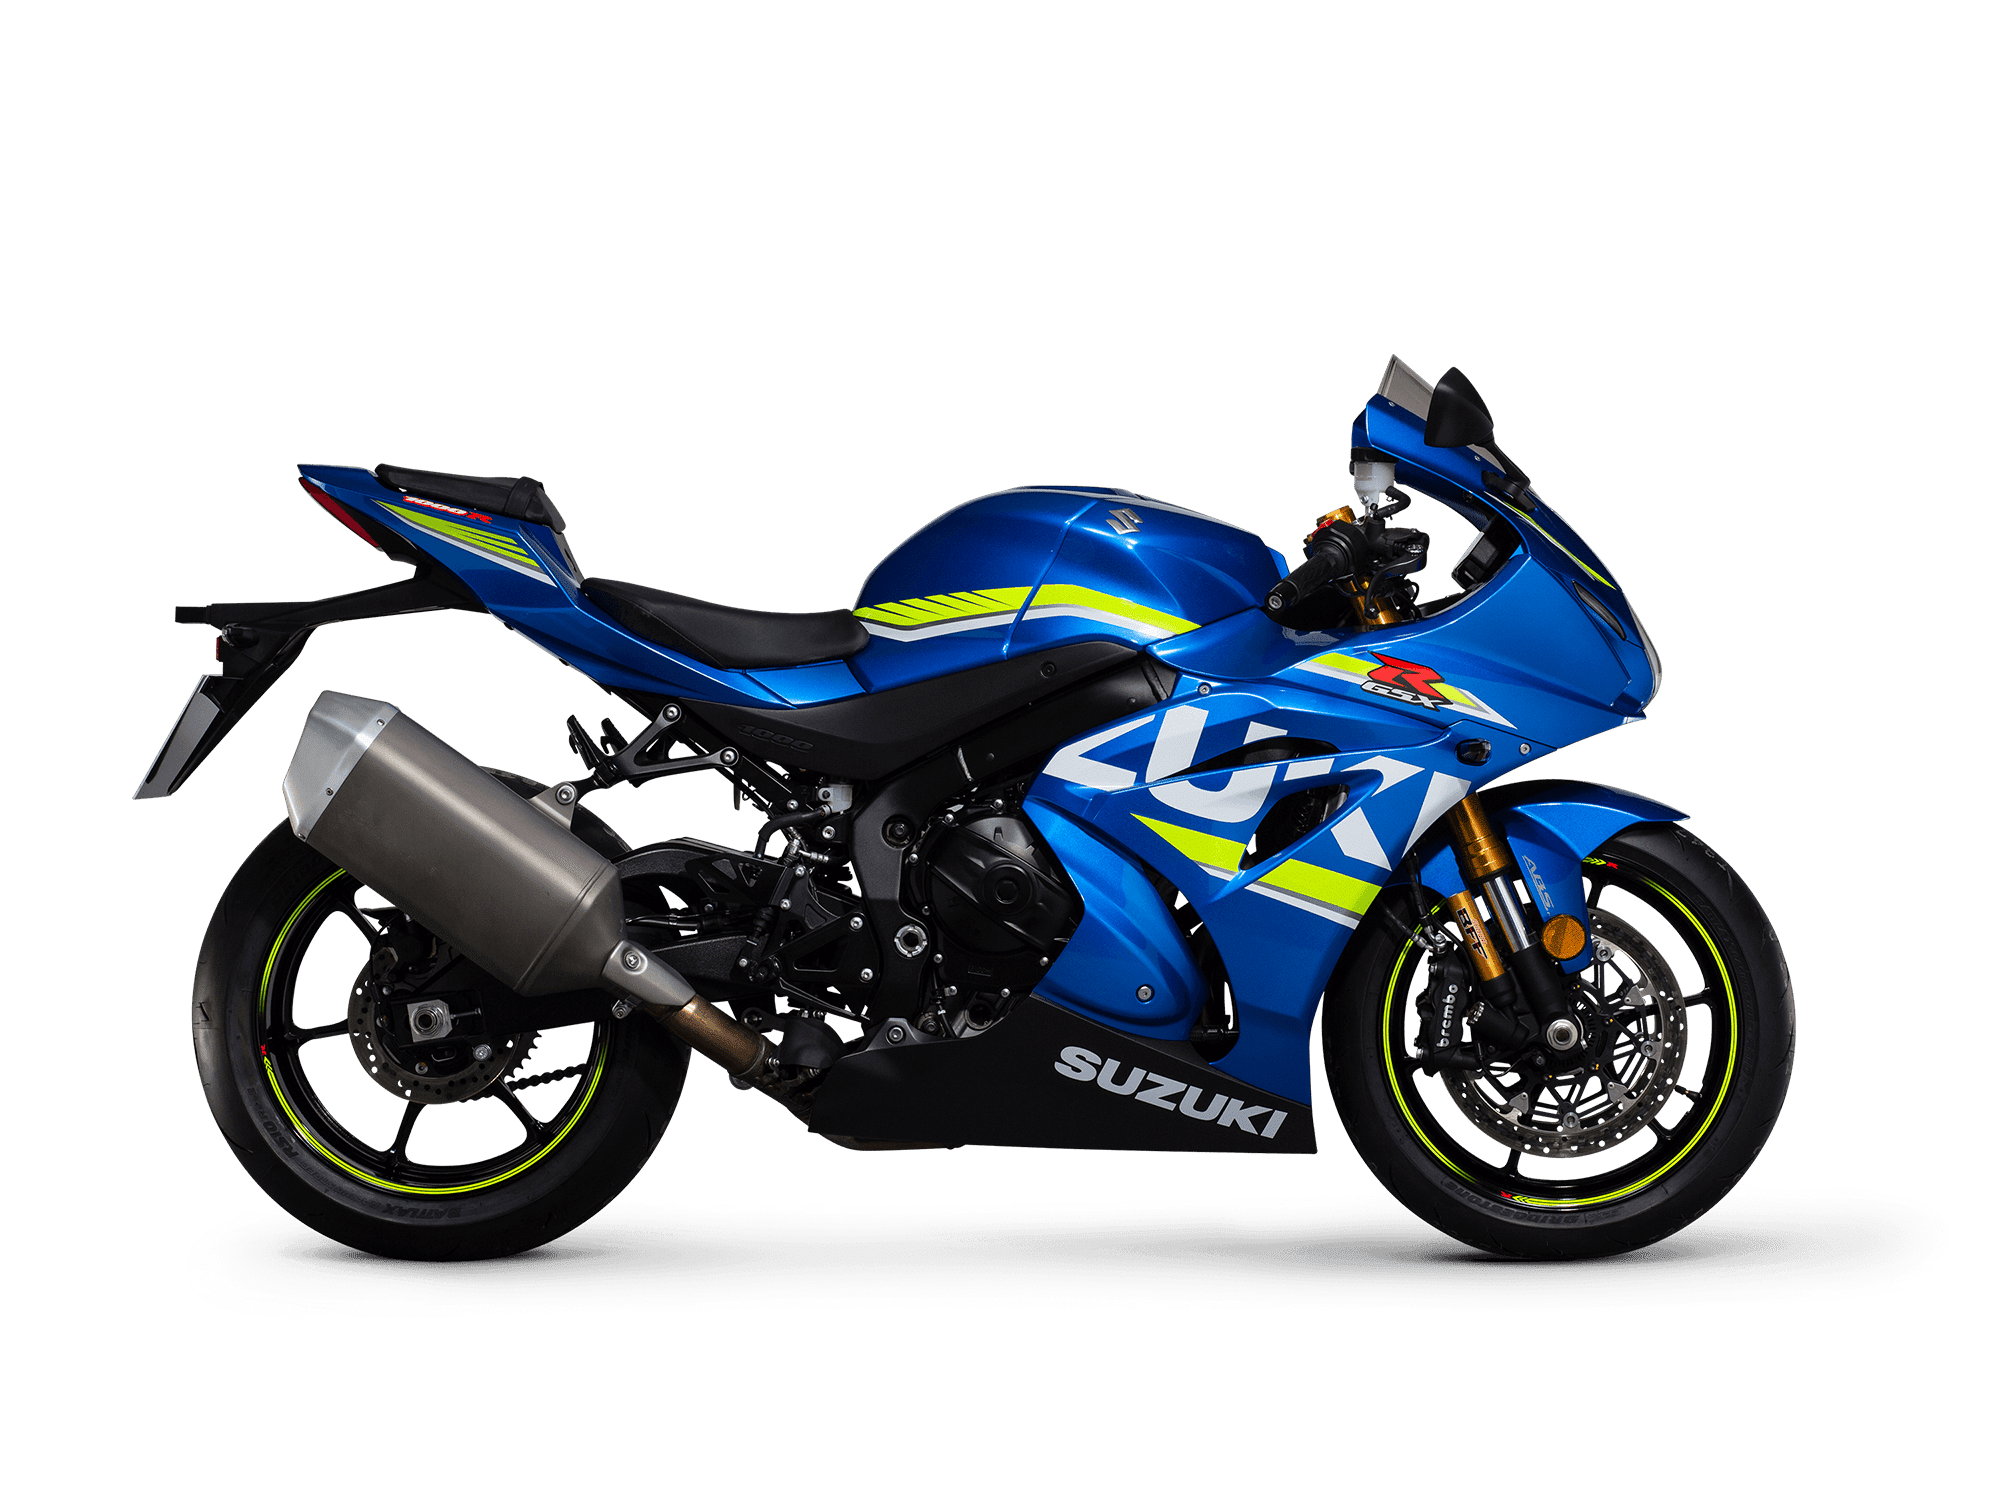 Suzuki GSX-R1000R blue with gold forks - side facing right